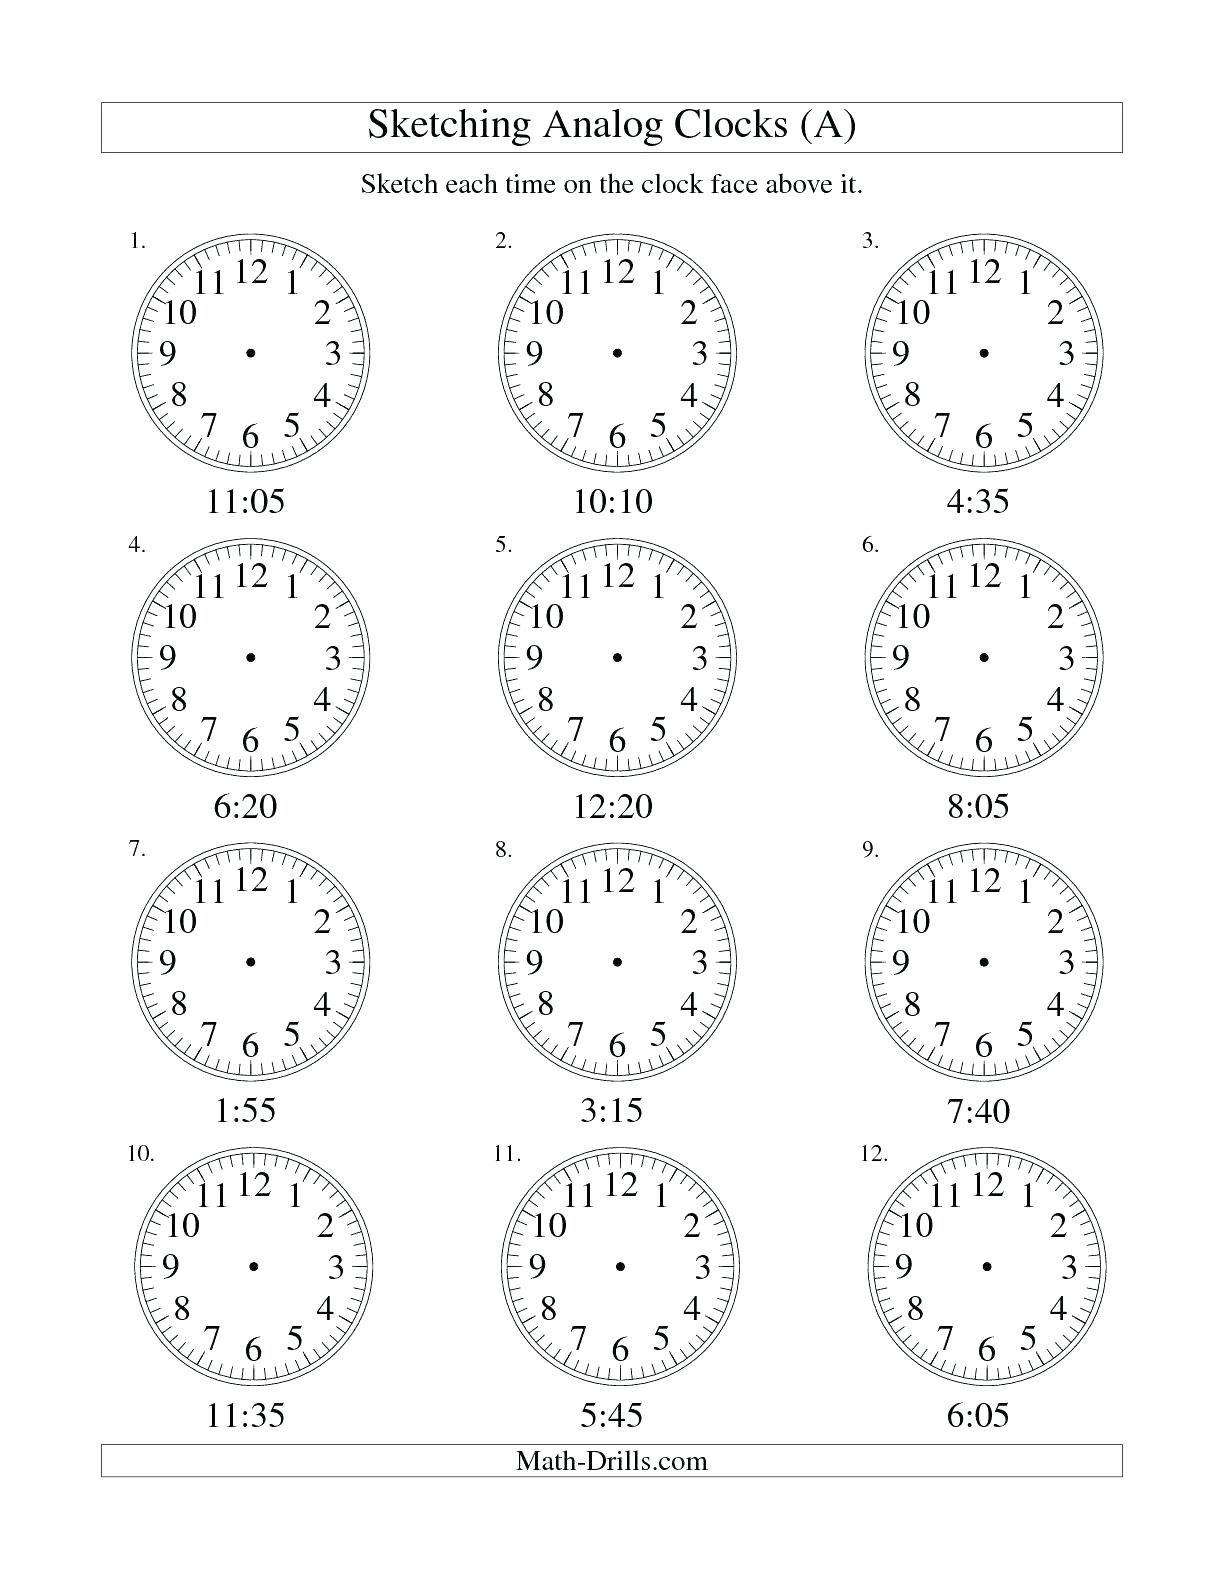 hight resolution of 3 Free Math Worksheets Second Grade 2 Addition Adding 2 Single Digit  Numbers - apocalomegaproductions.com